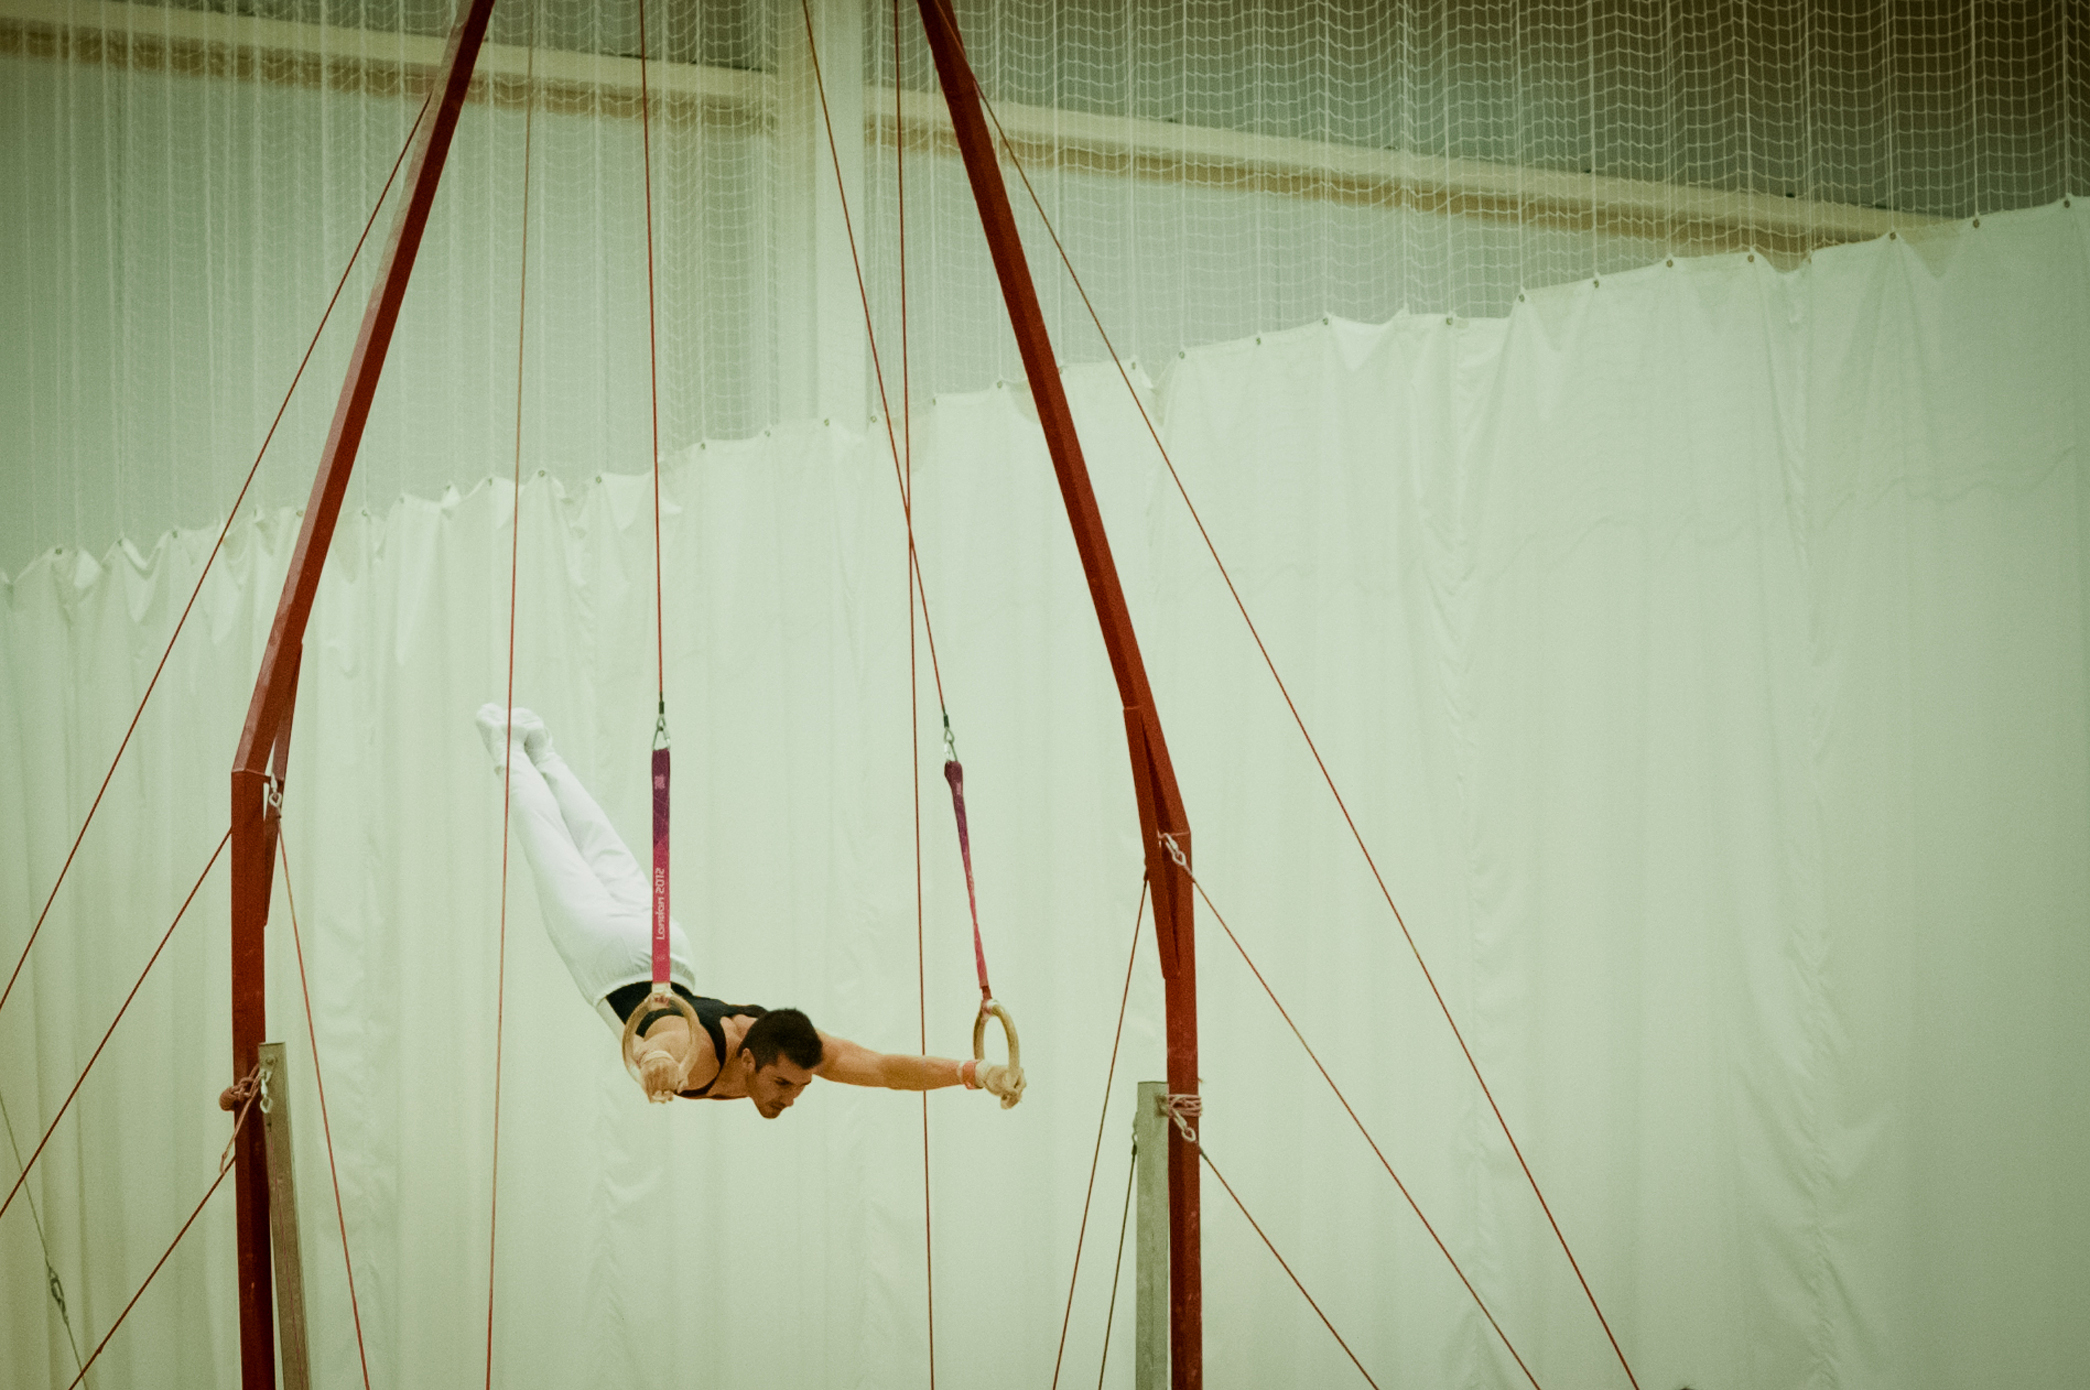 Dismount on the Rings - London Gymnastics